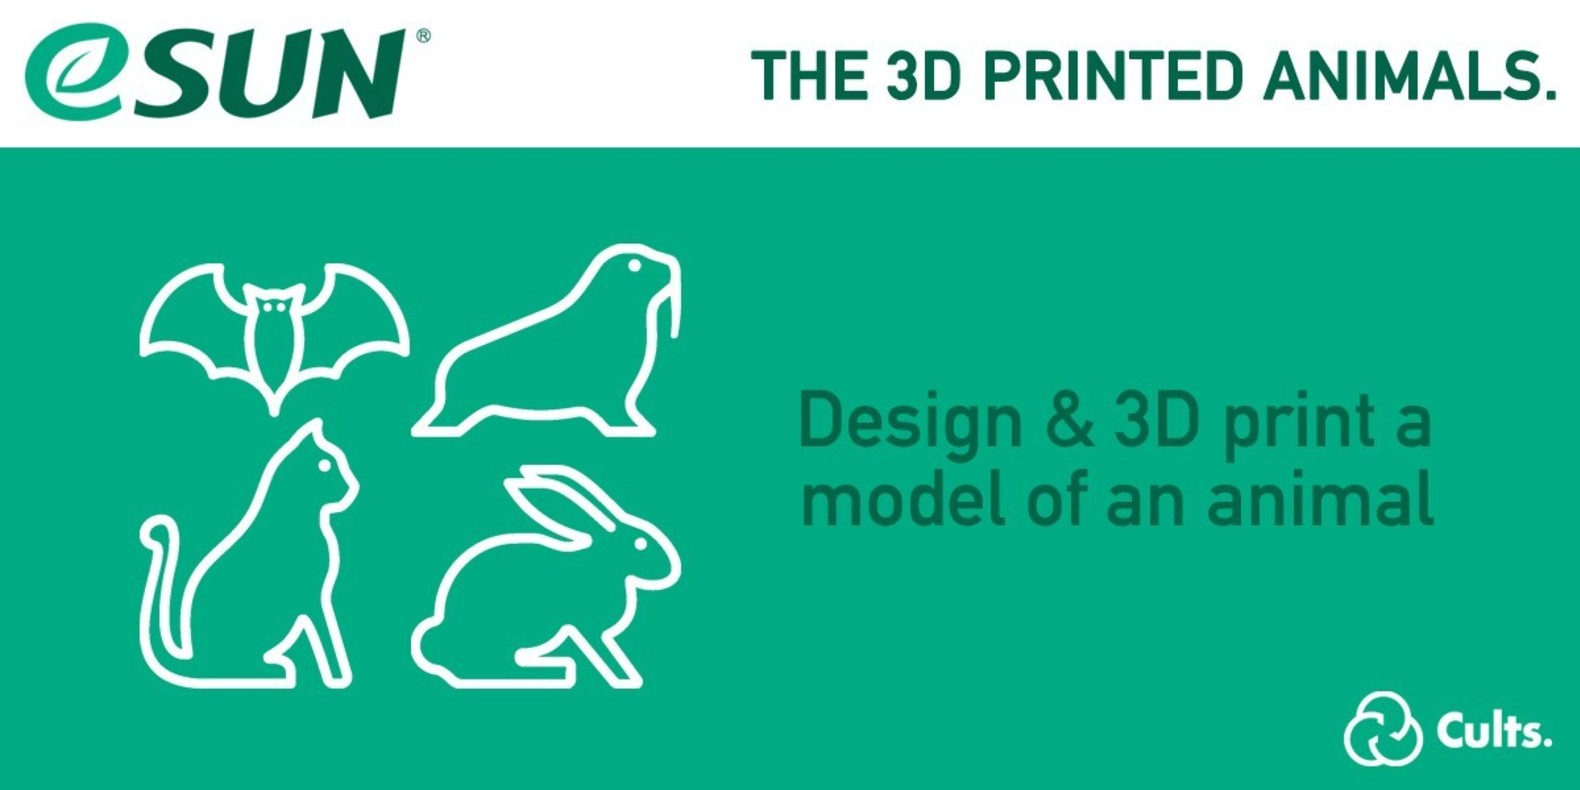 3D printing contest with eSun - the 3D printed animals